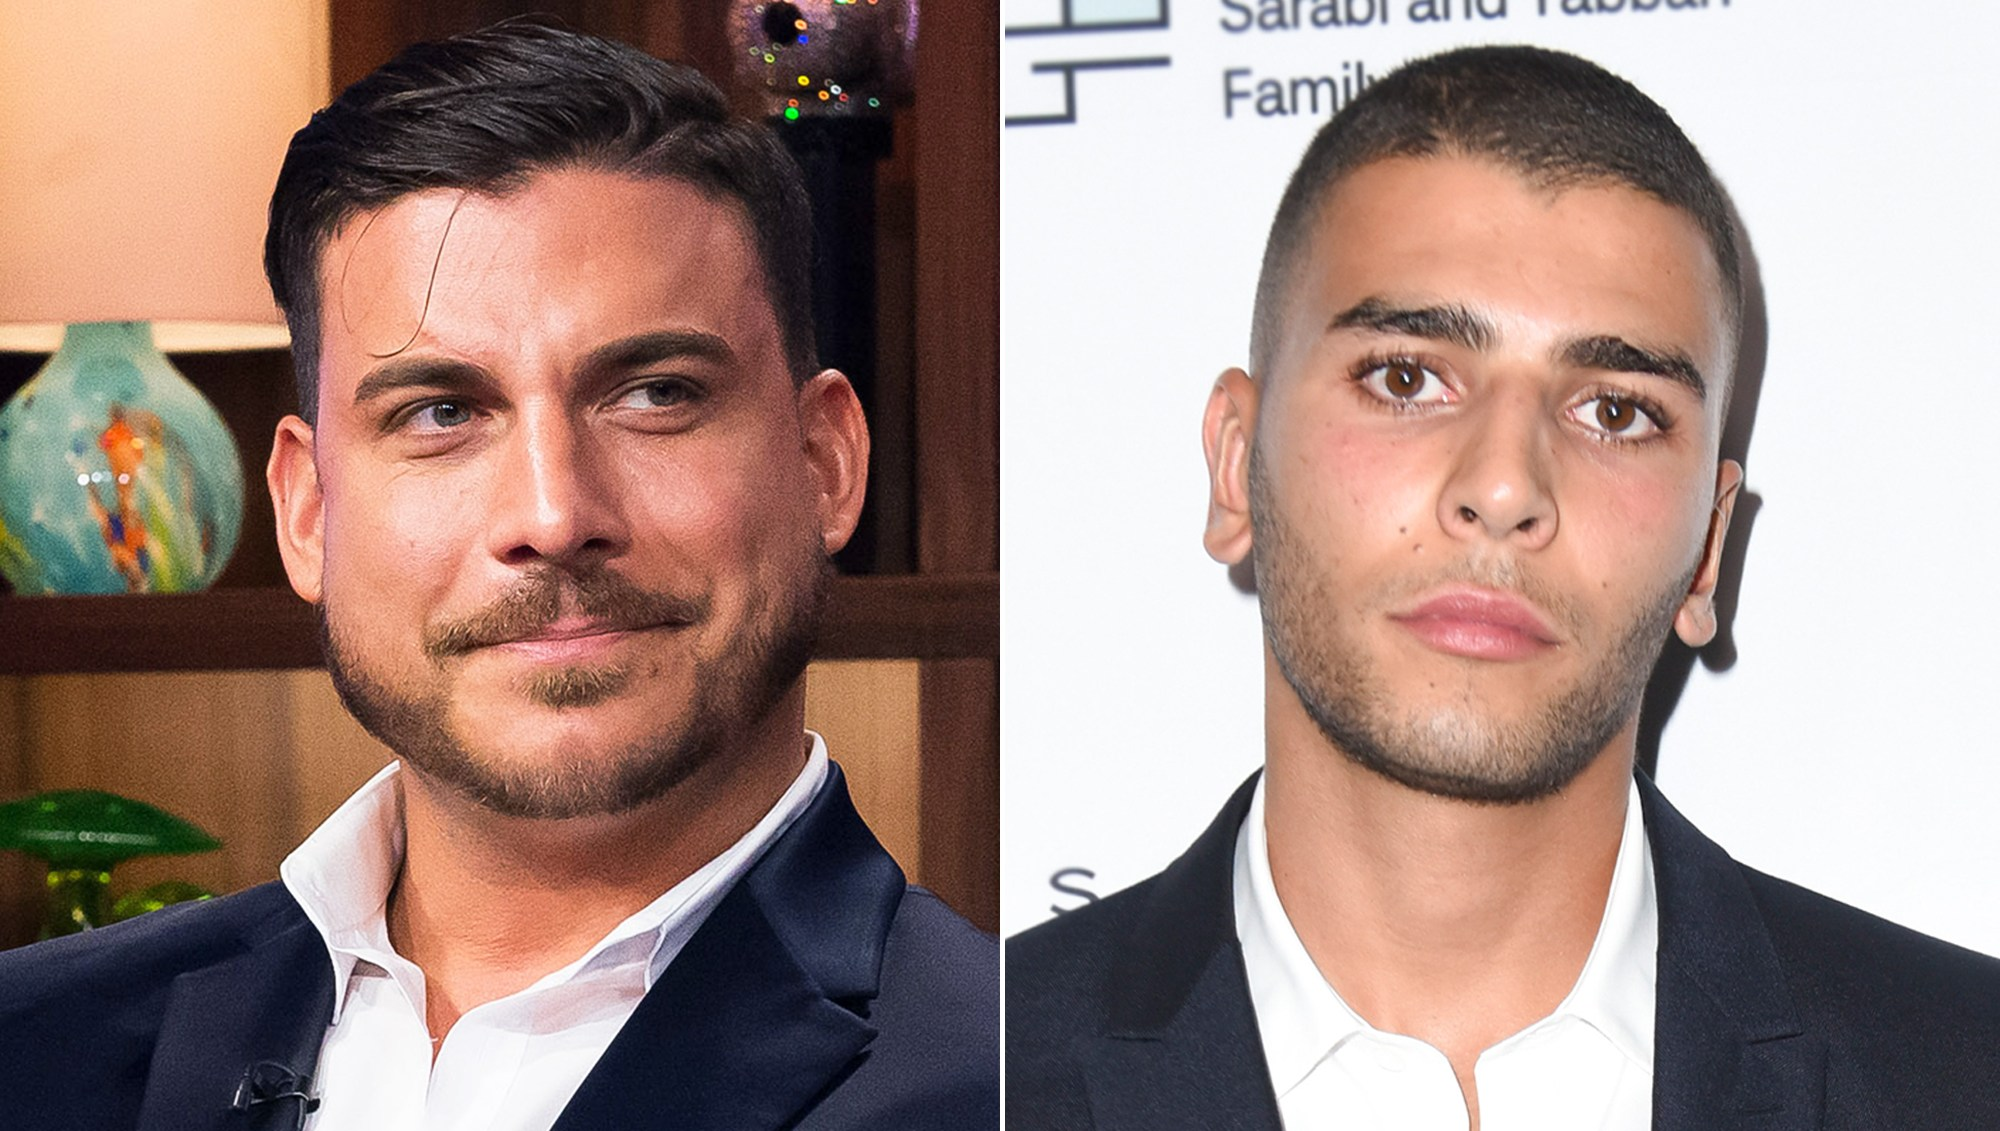 Jax Taylor and Younes Bendjima